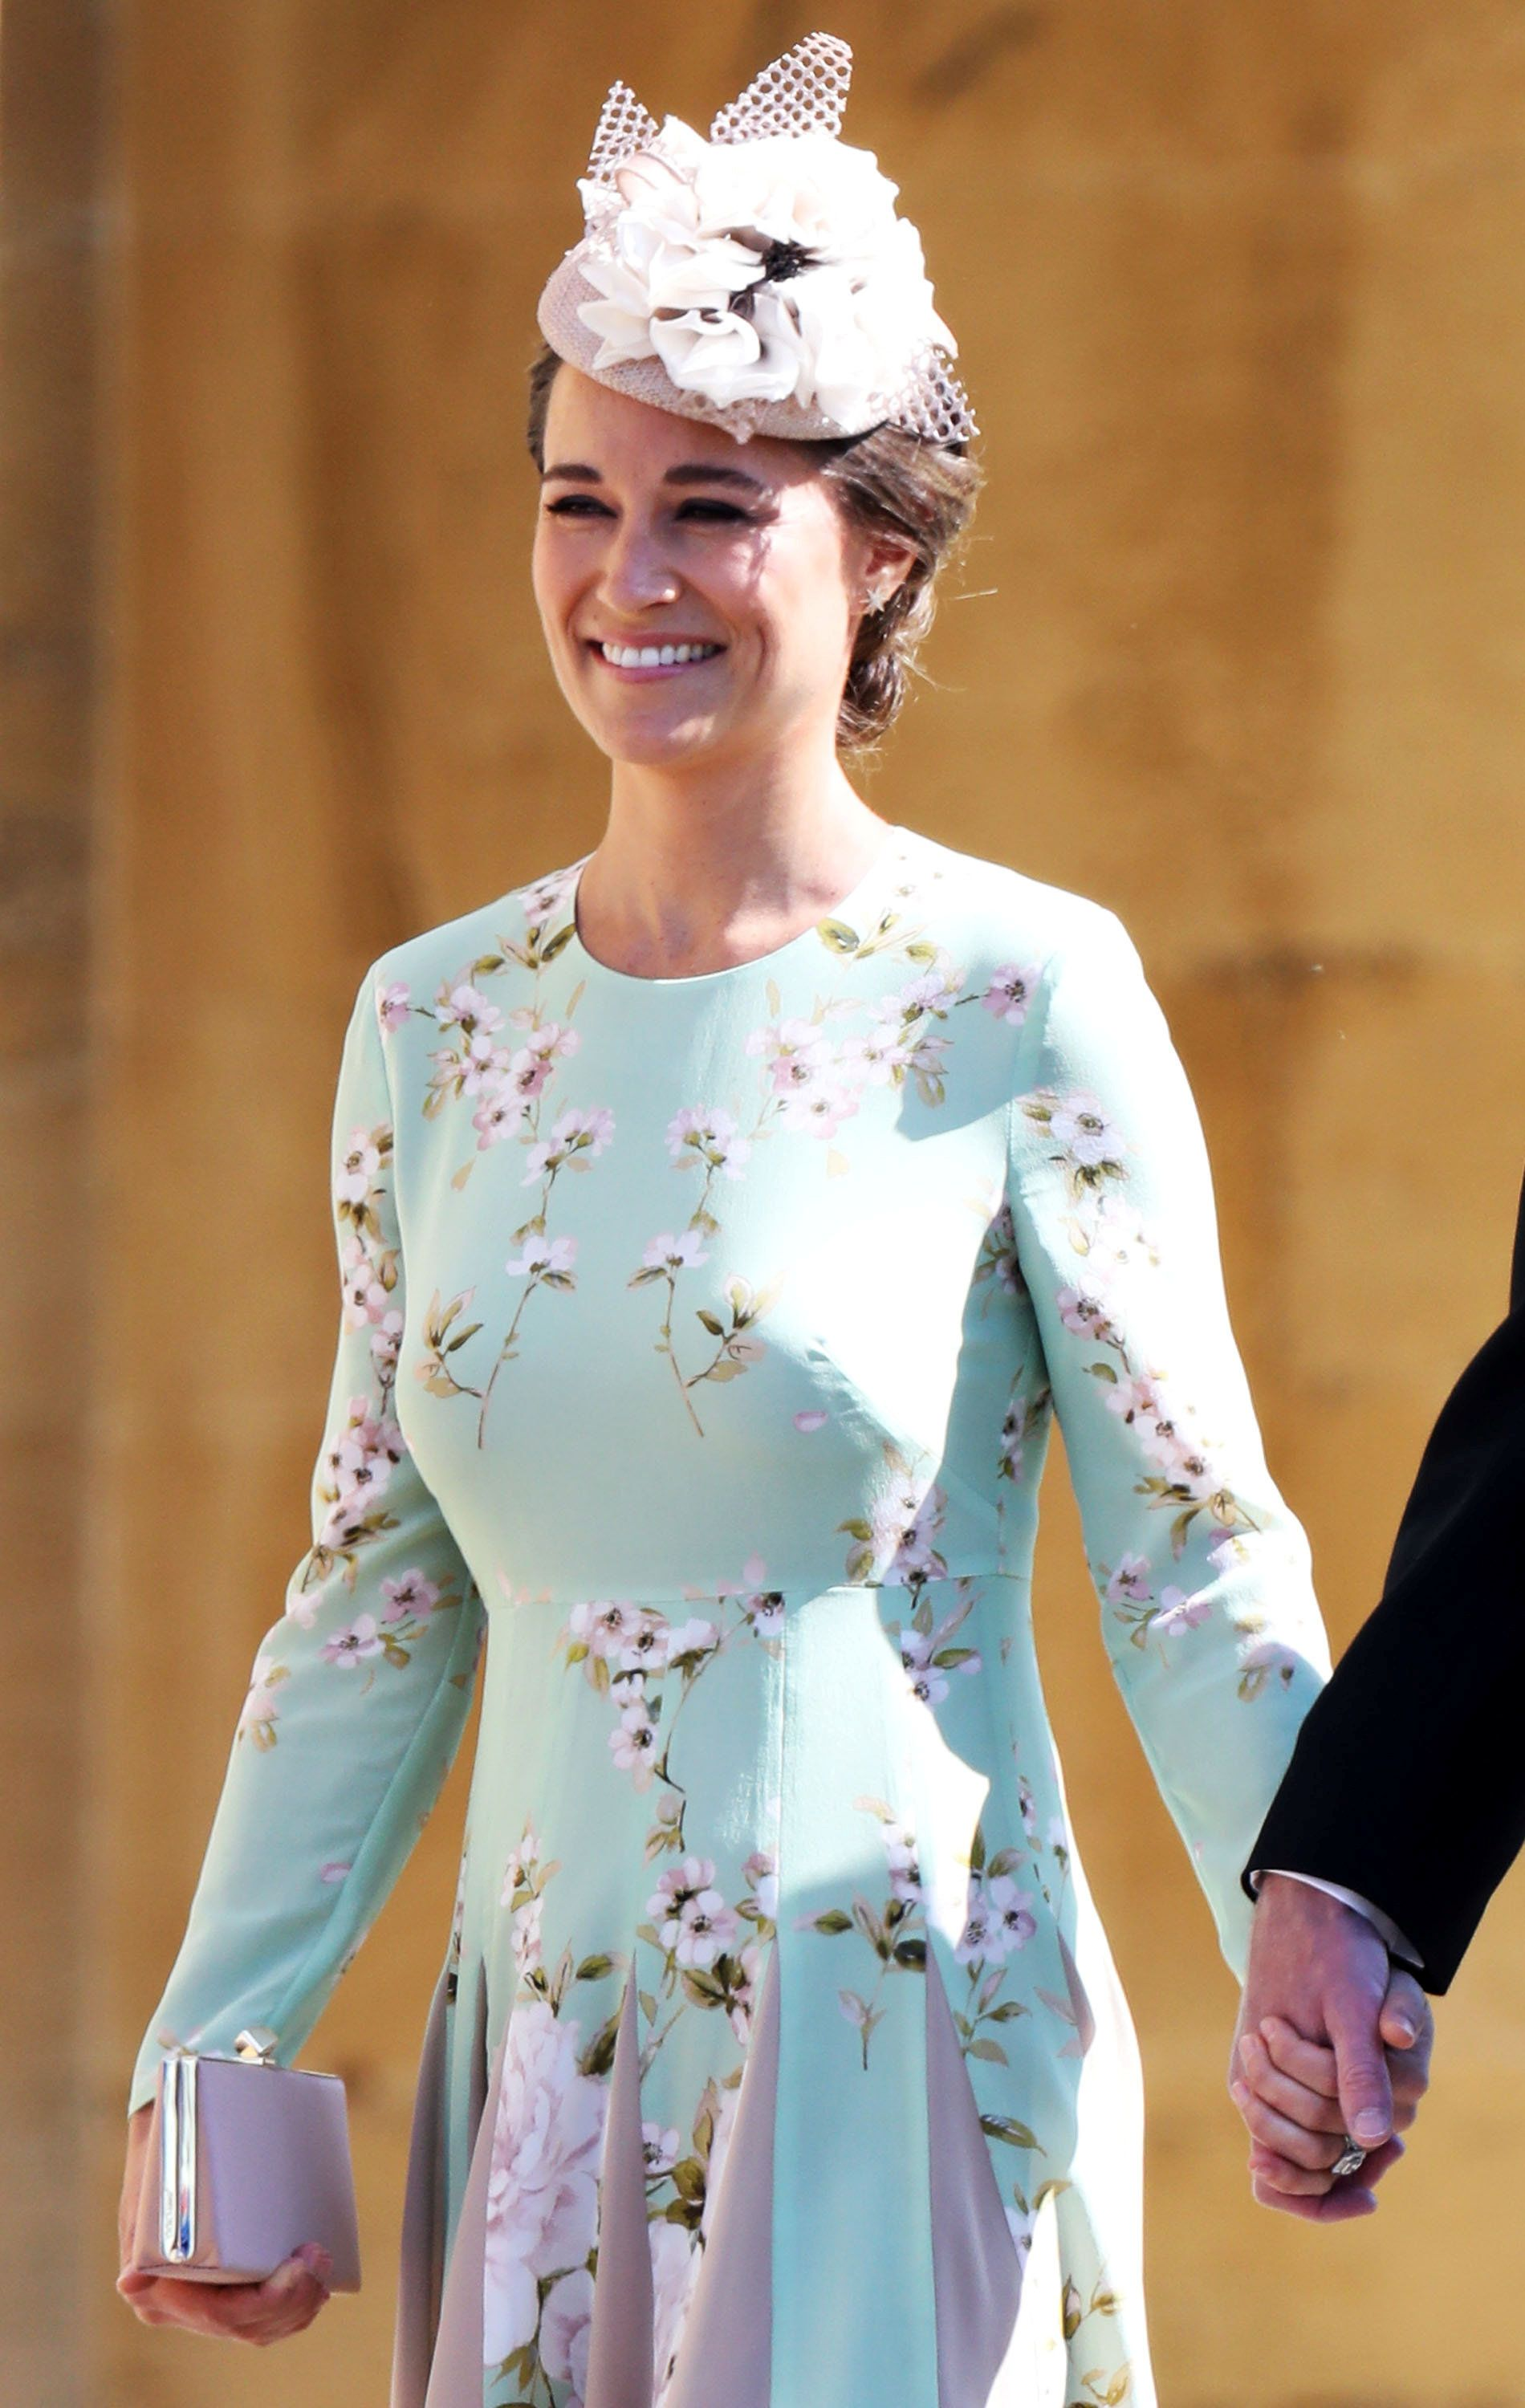 Pippa Middleton's Dress For The Royal Wedding Looks Like An Iced Tea